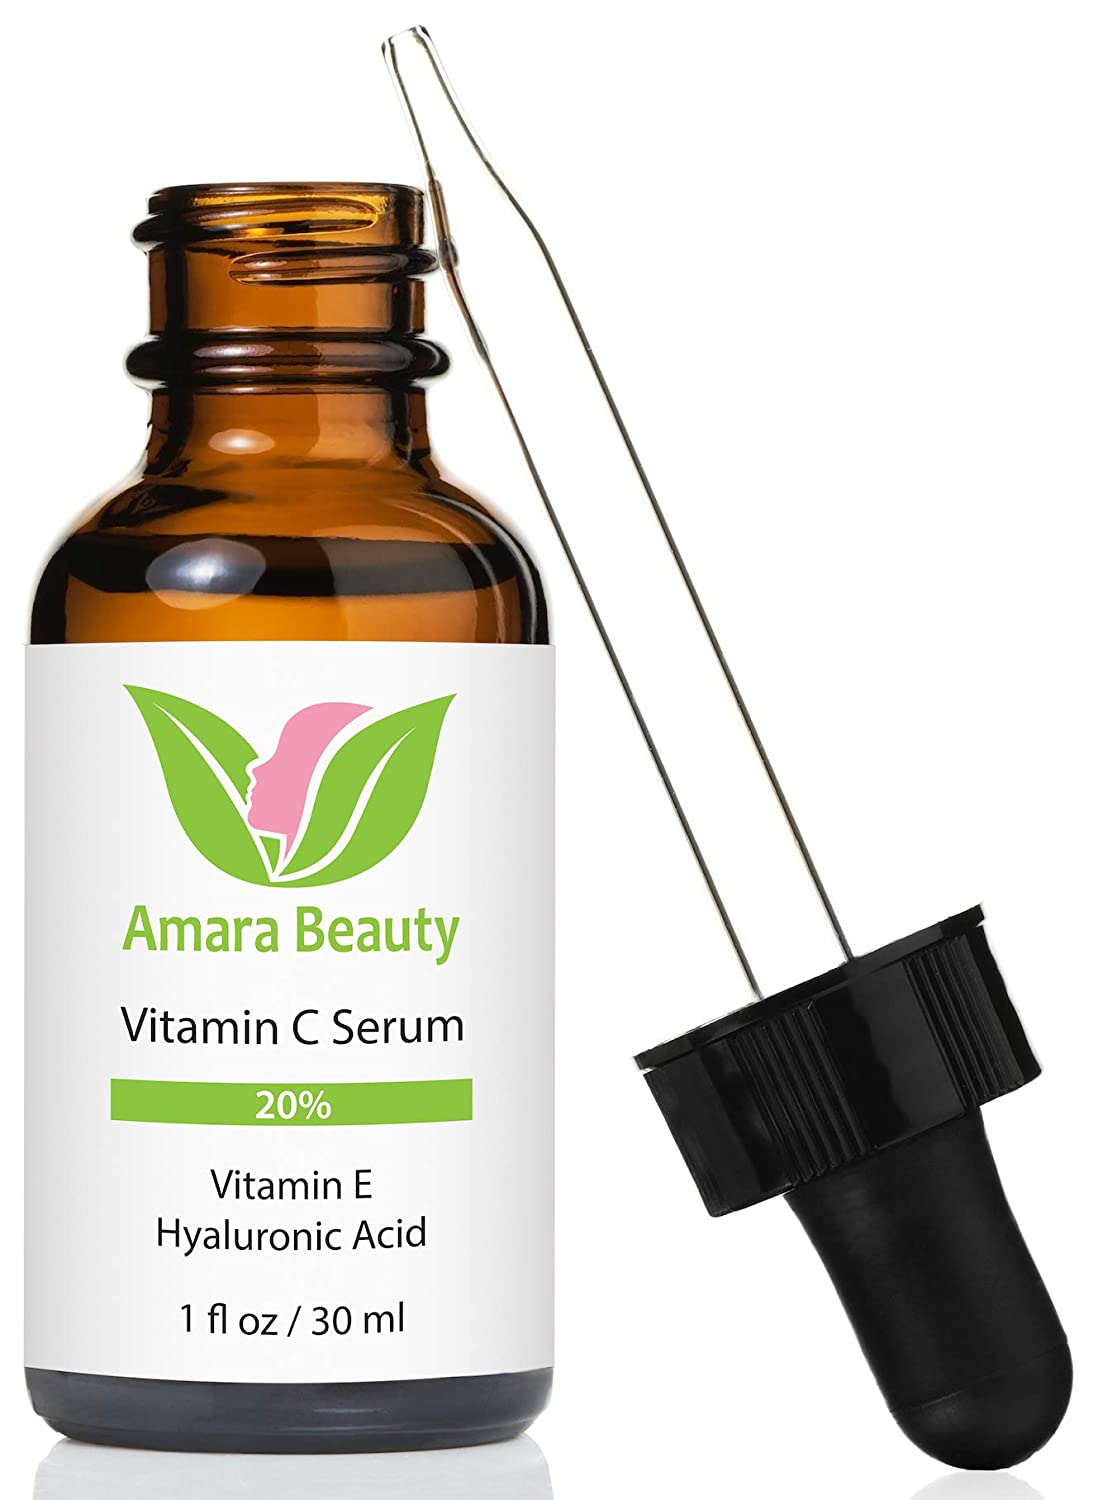 Top 10 Best Hyaluronic Acid Serum Reviews in 2020 5